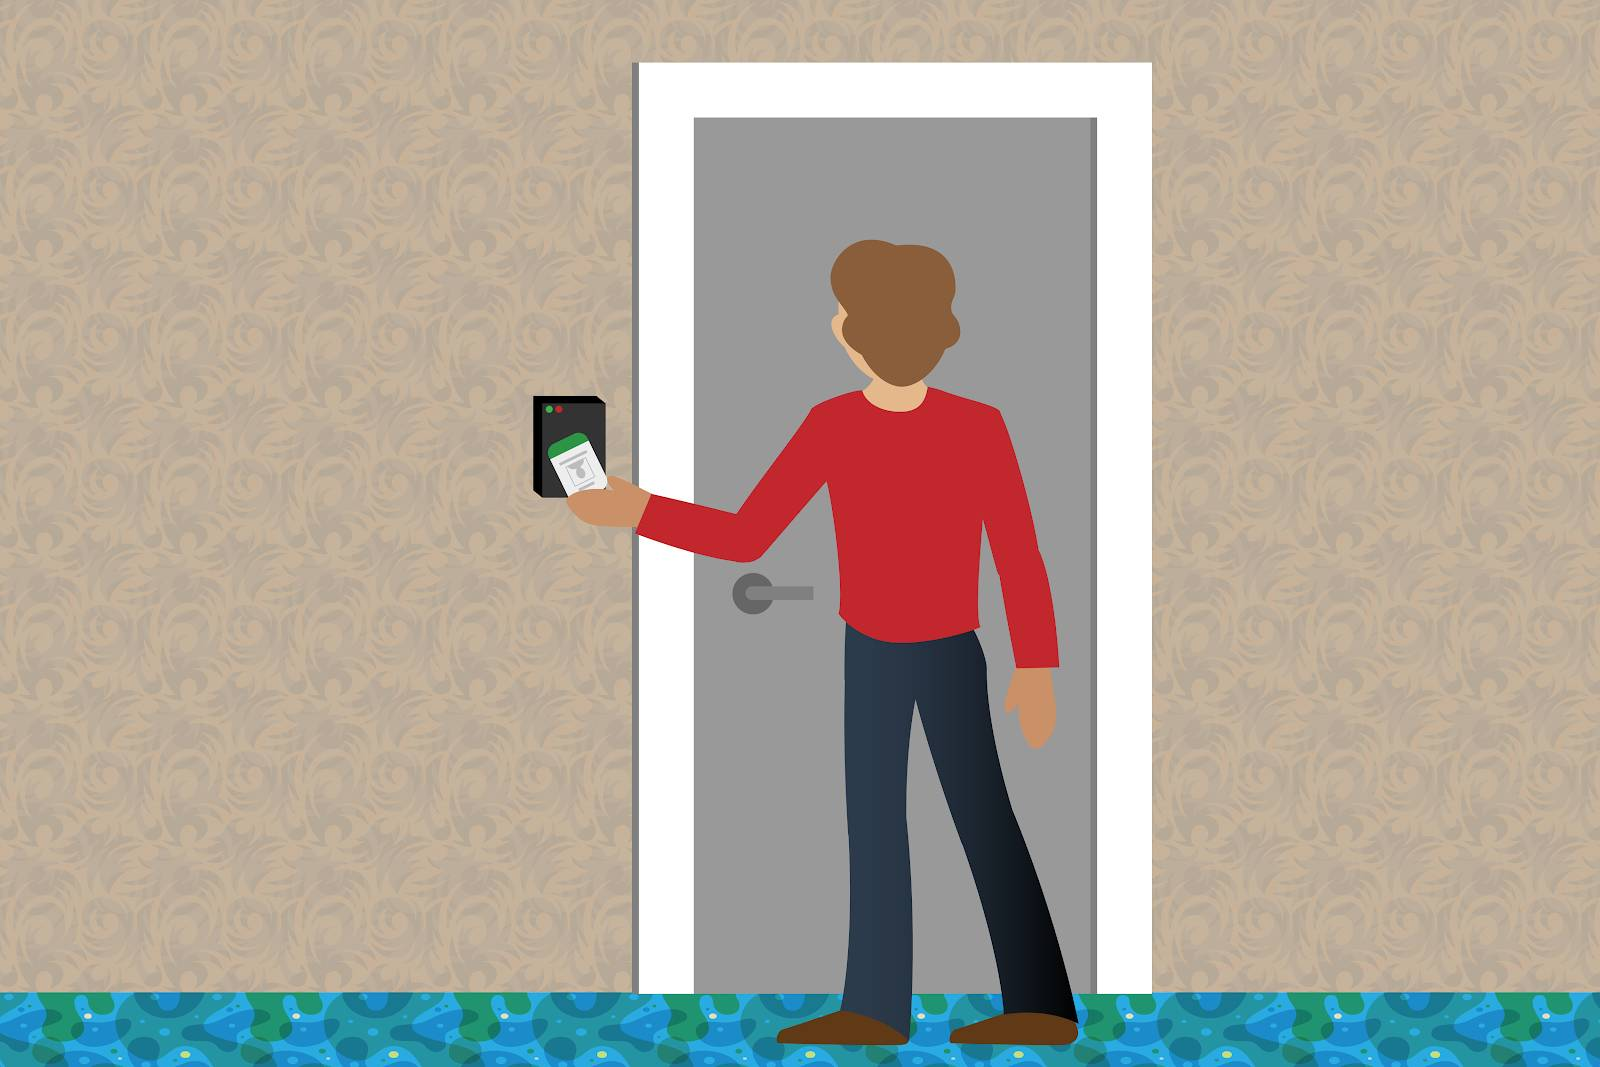 Image of a person badging into a locked door.